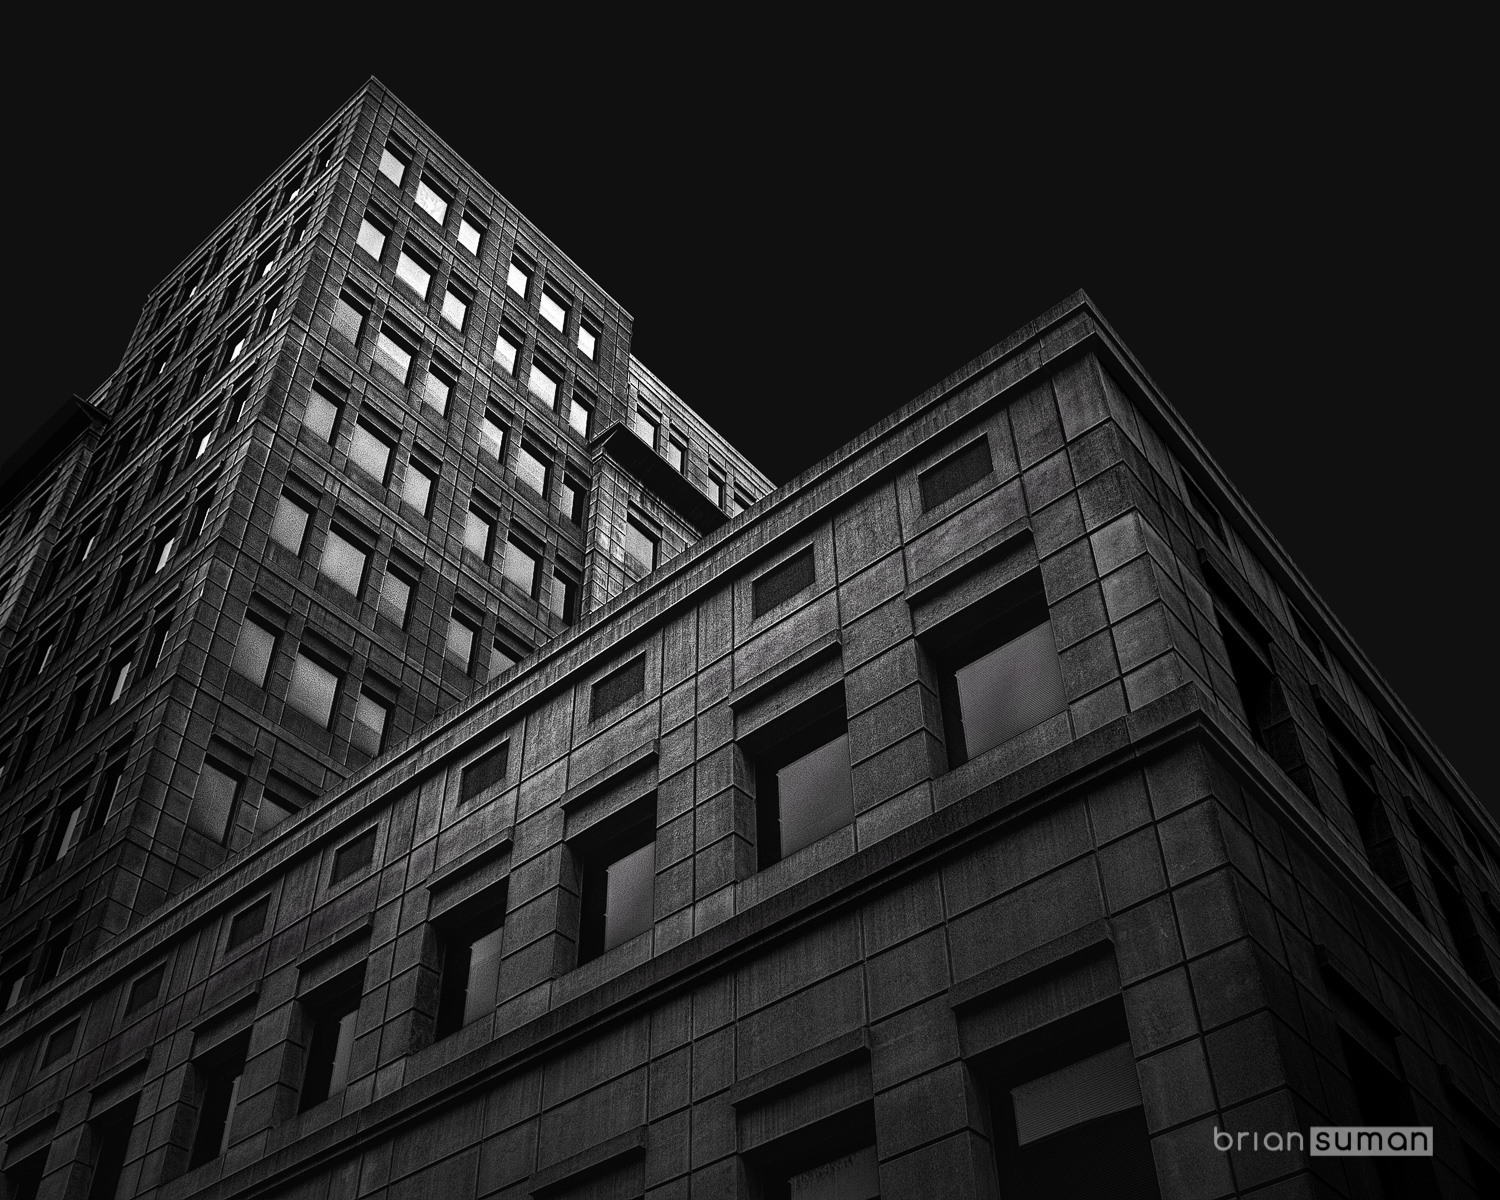 Government Bldg-0001-Brian Suman Photography.jpg